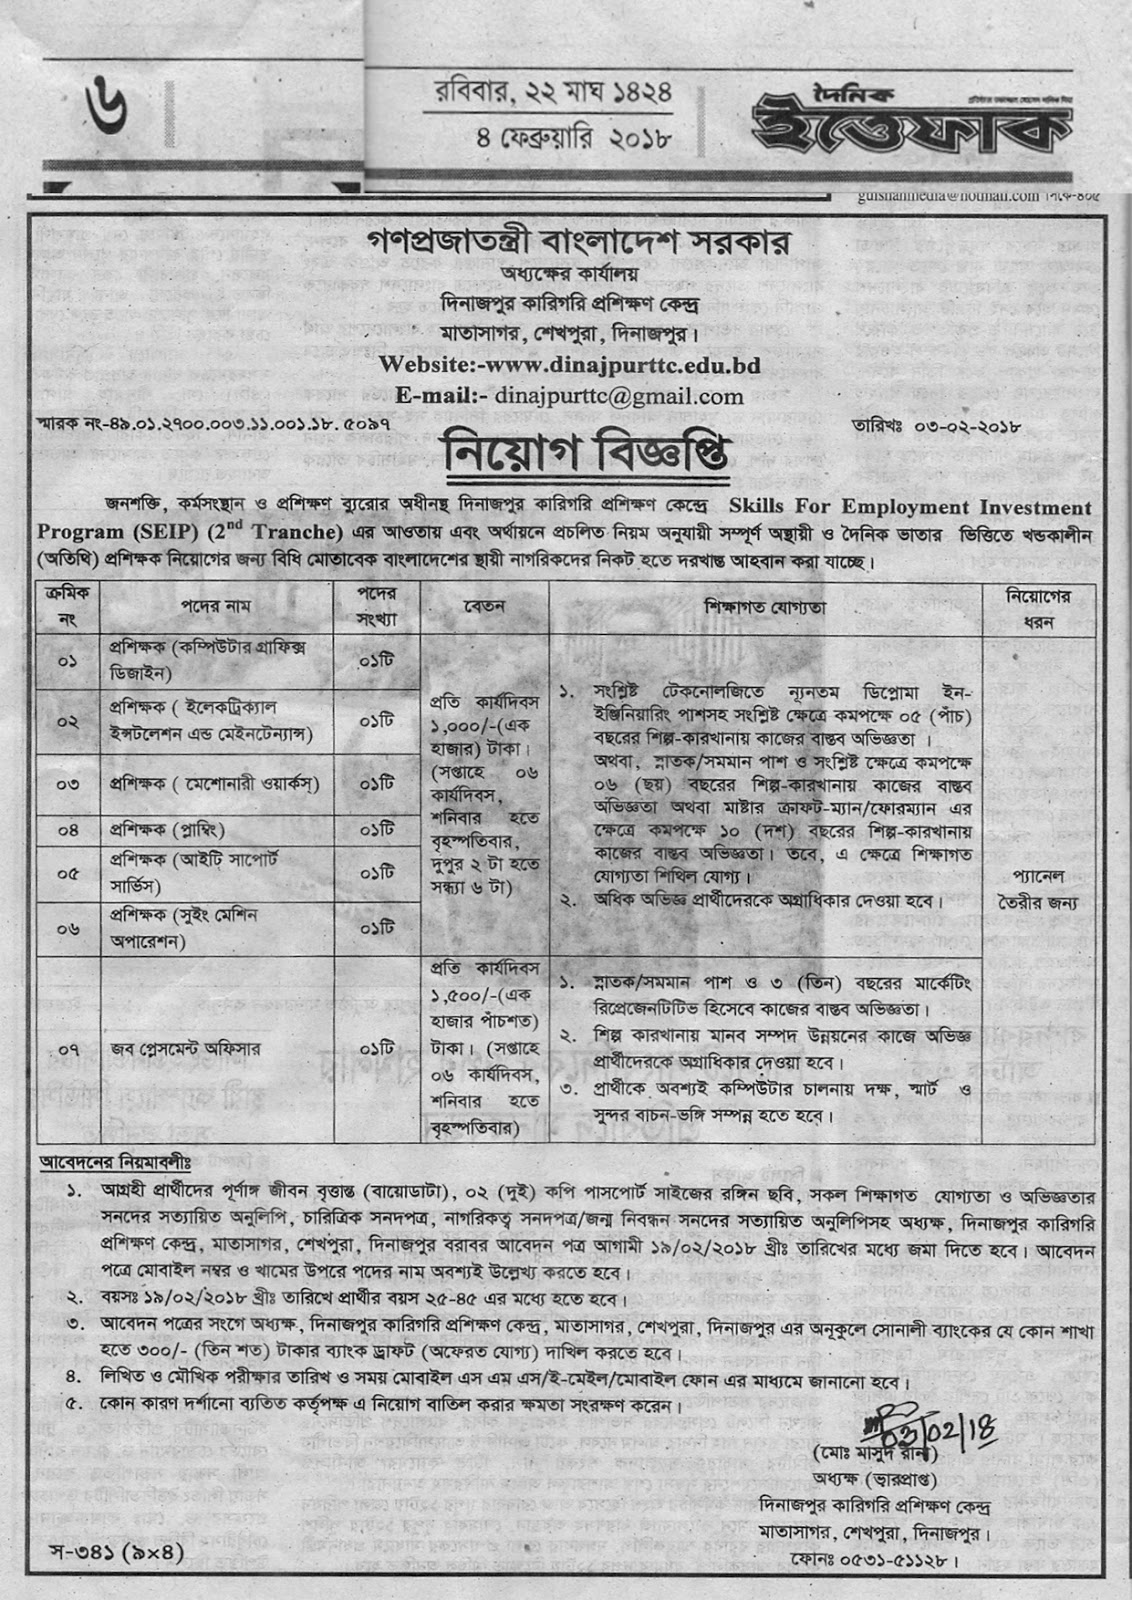 Dinajpur Technical Training Center Trainer Recruitment Circular